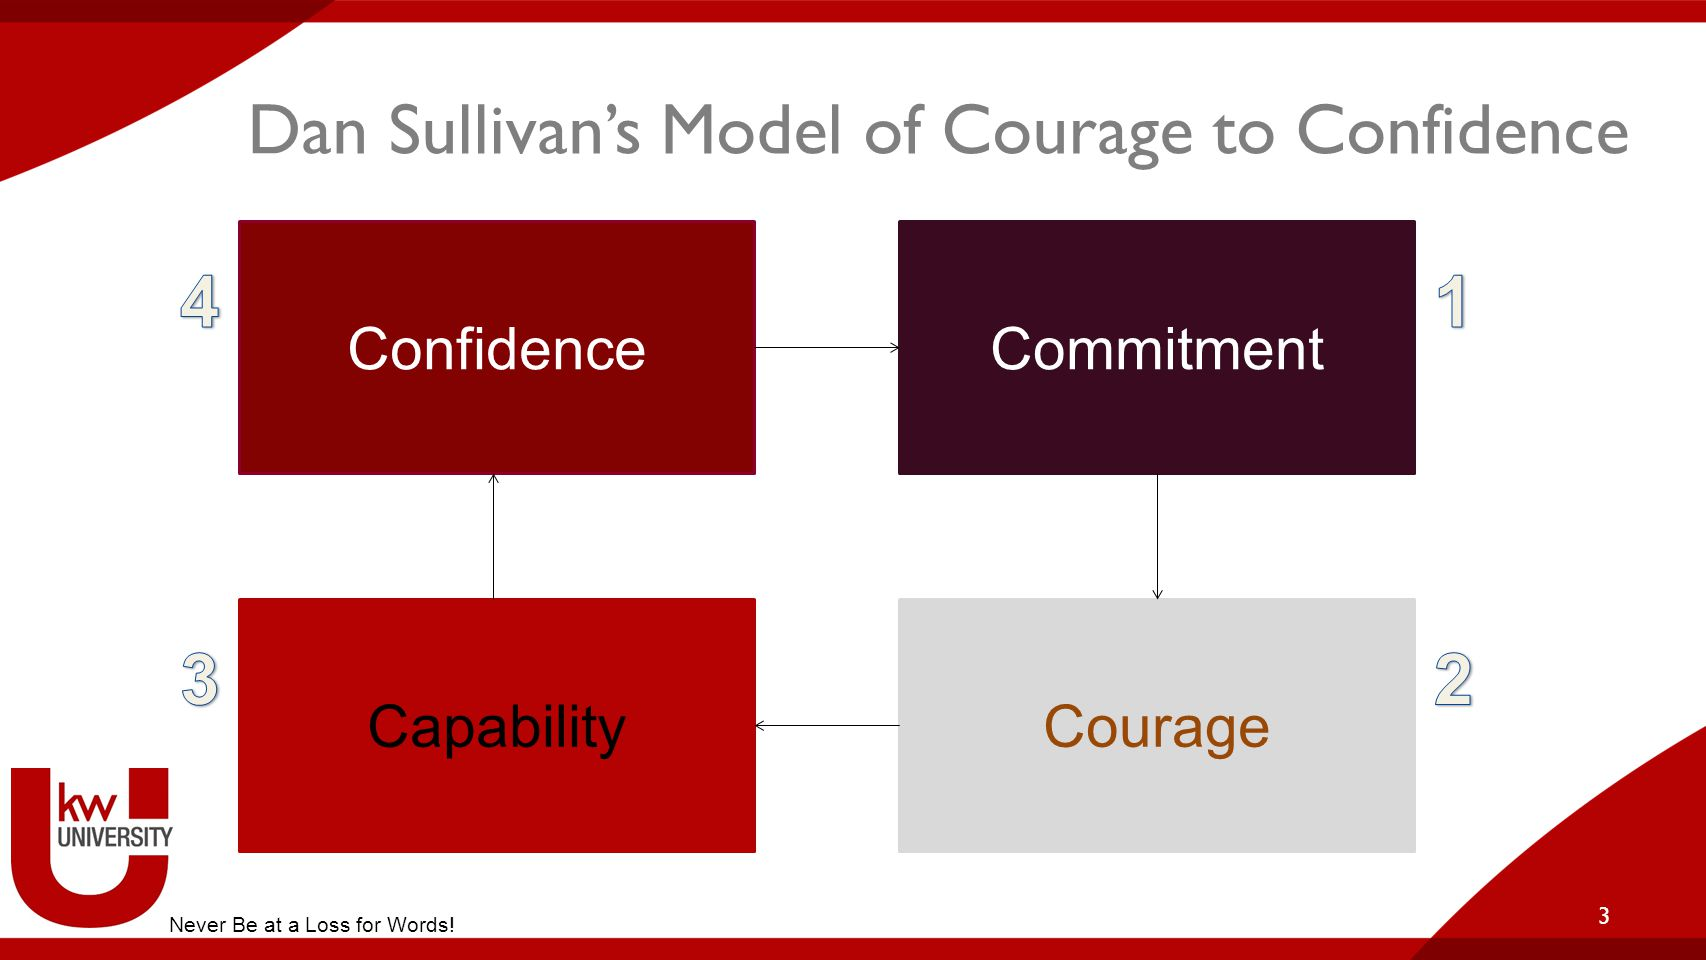 Dan Sullivan's Model of Courage to Confidence